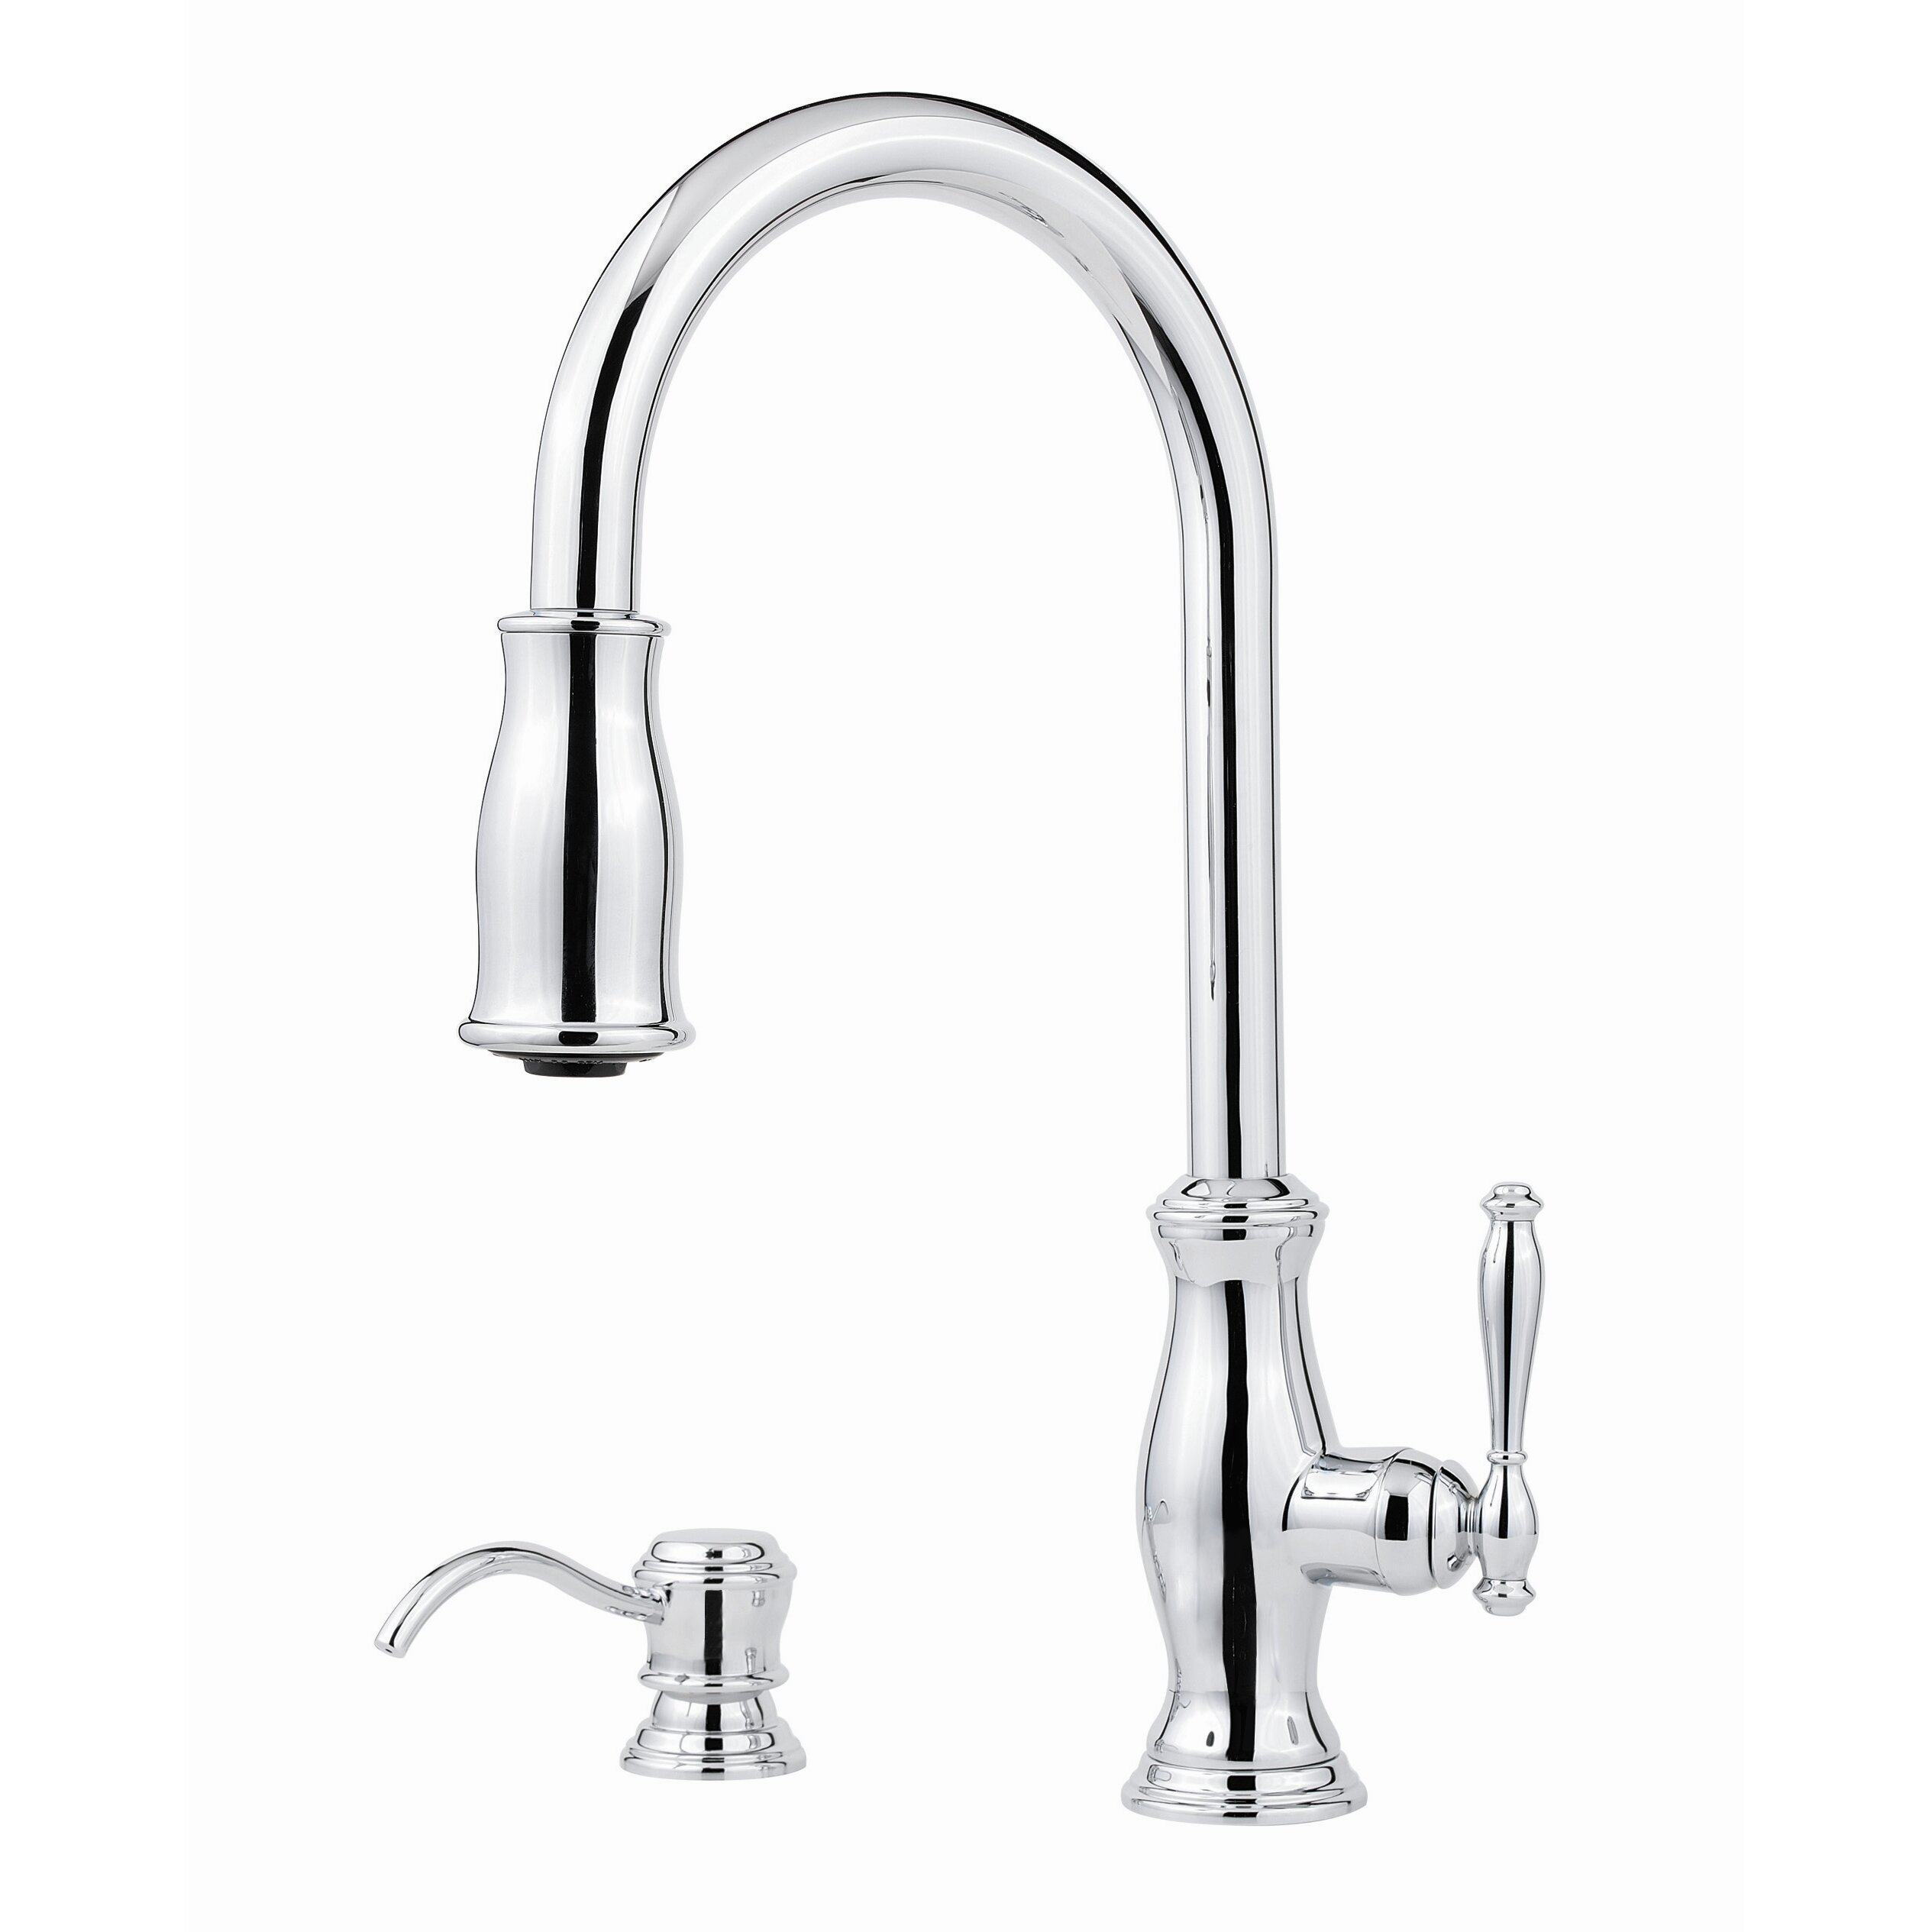 Pfister Hanover Single Handle Deck Mounted Kitchen Faucet With Soap Dispenser Reviews Wayfair